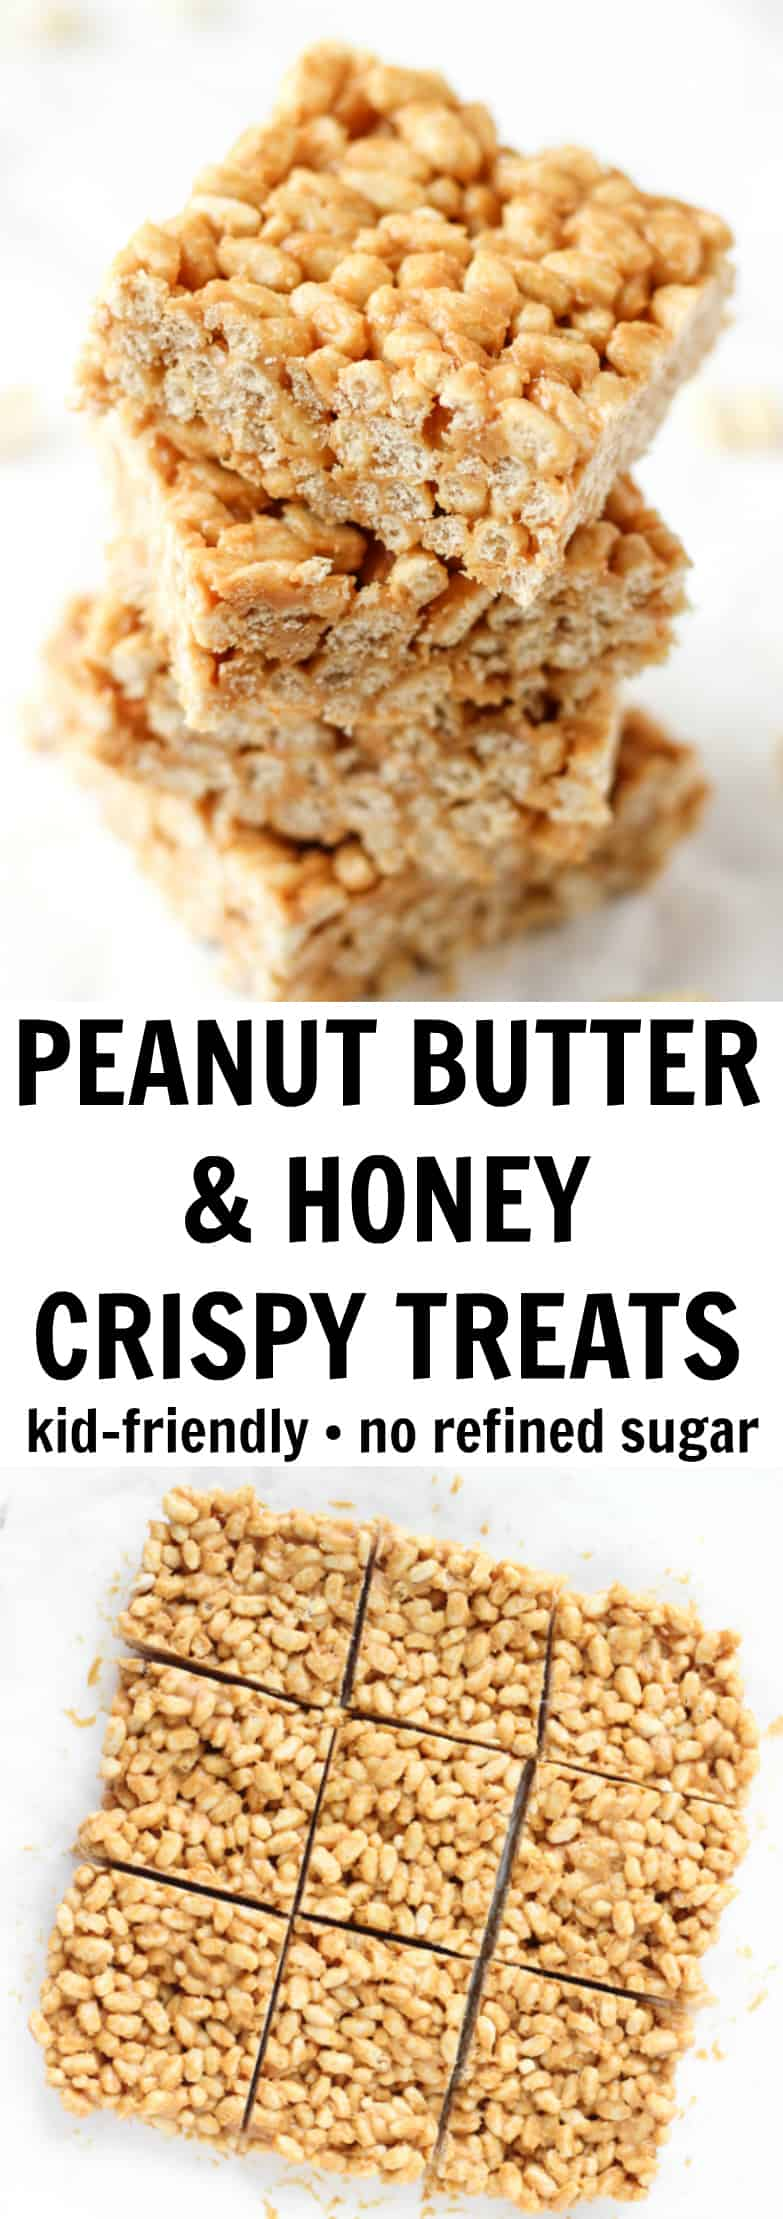 These peanut butter crispy treats have NO refined sugar and just three simple ingredients!